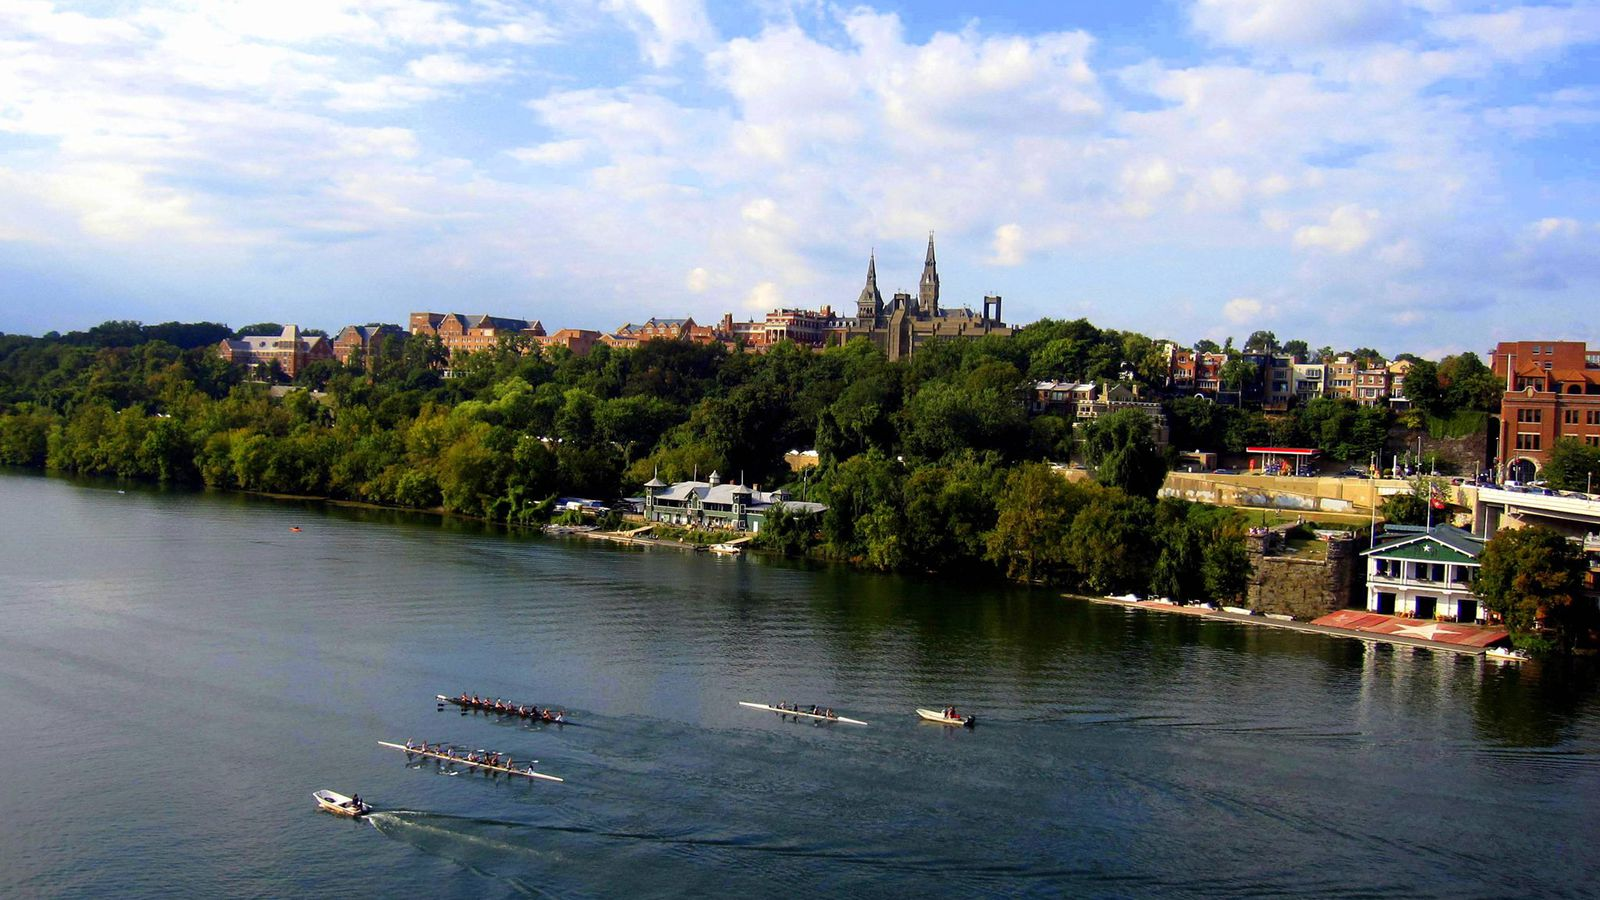 Georgetown_campus___healy_from_the_key_bridge.0